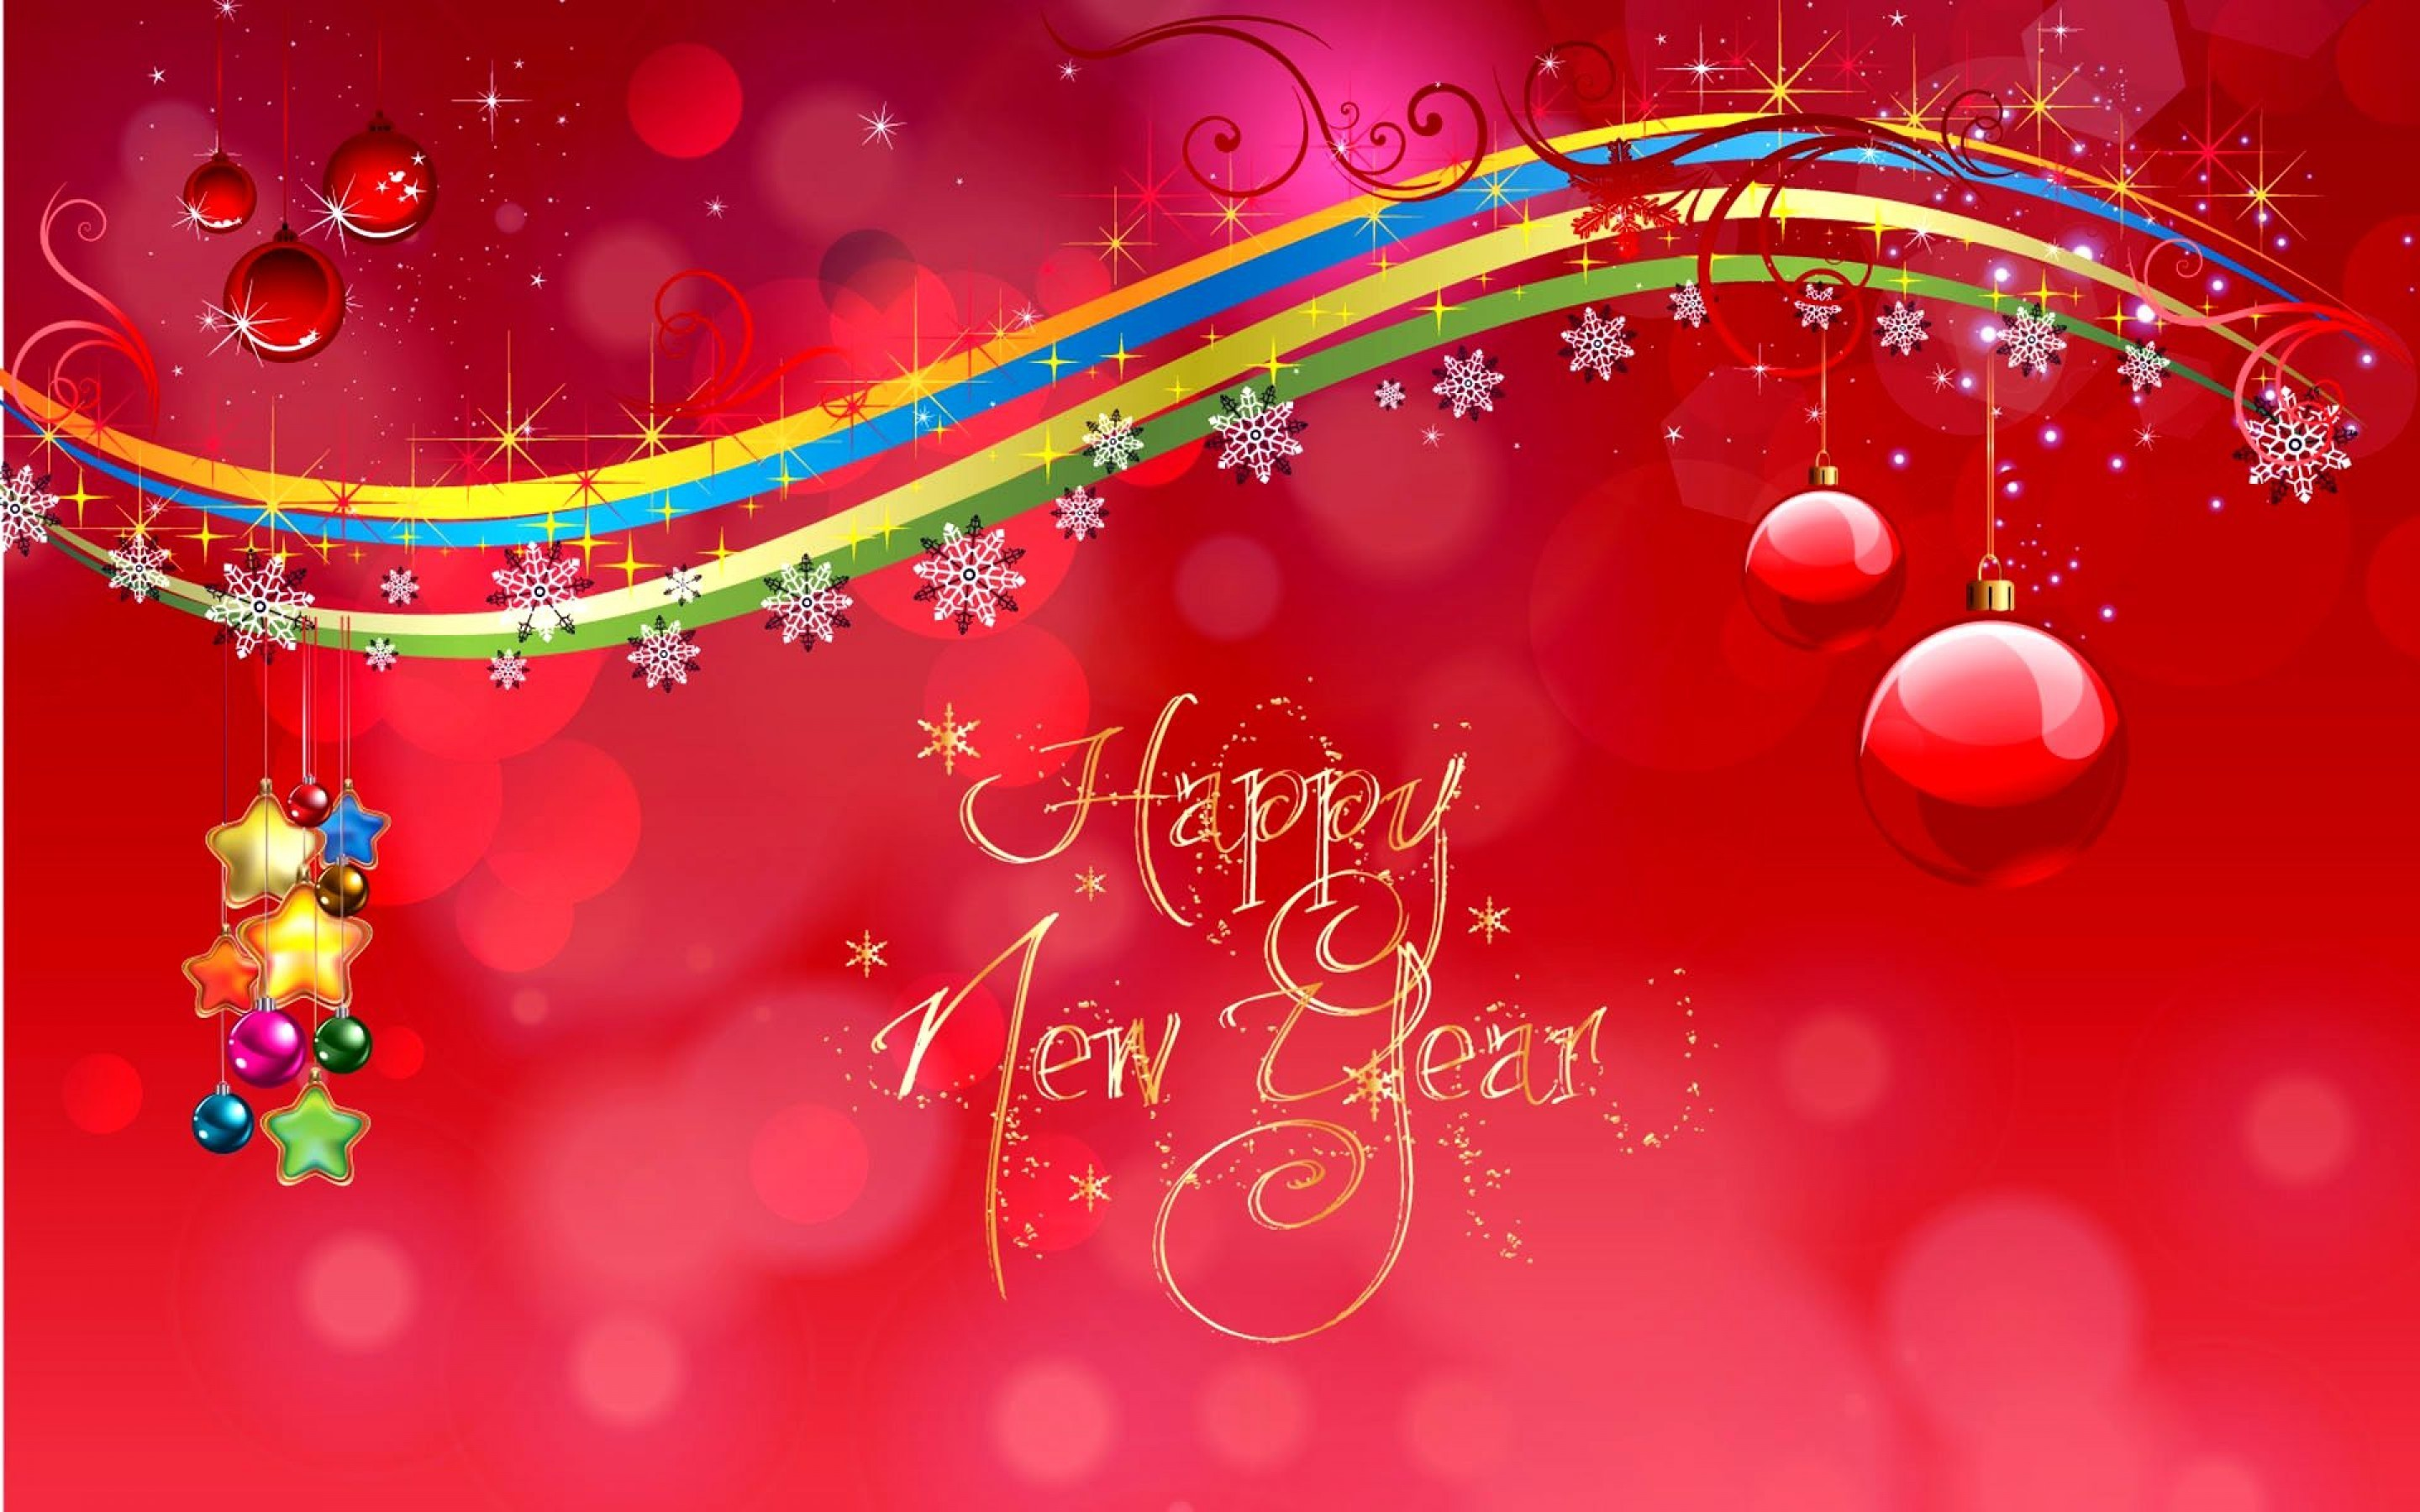 2880x1800 happy new year wallpapers 2018 download 1920x1200